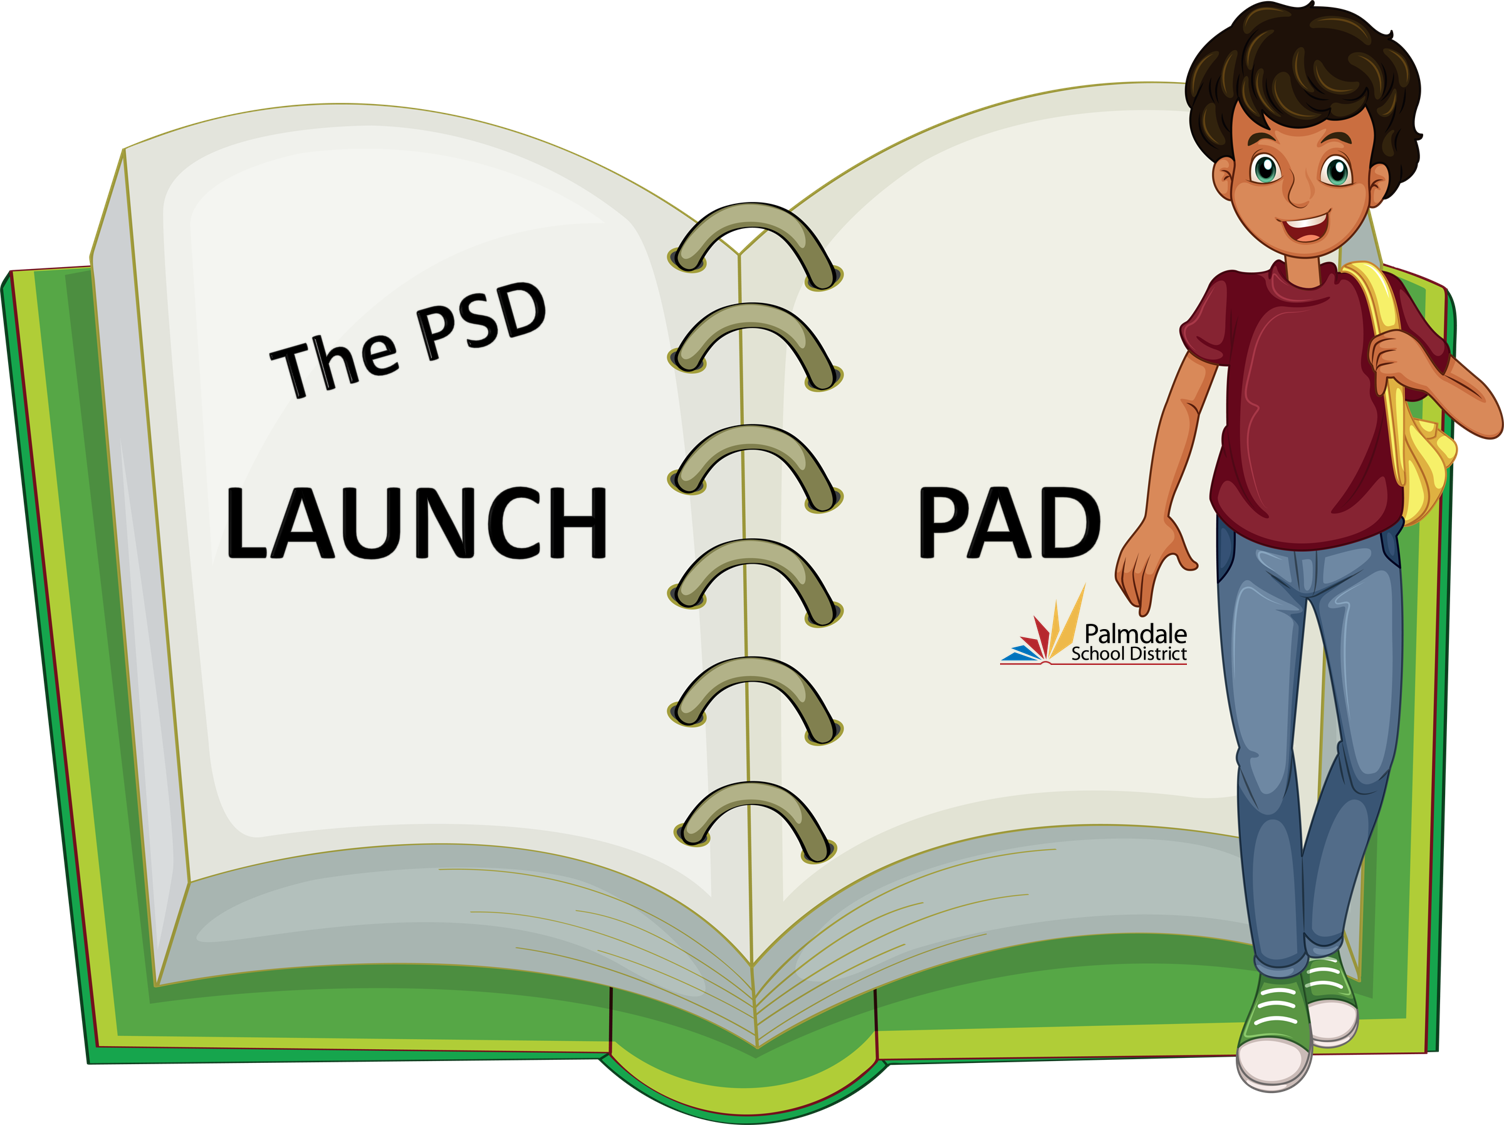 The Palmdale School District Launch Pad